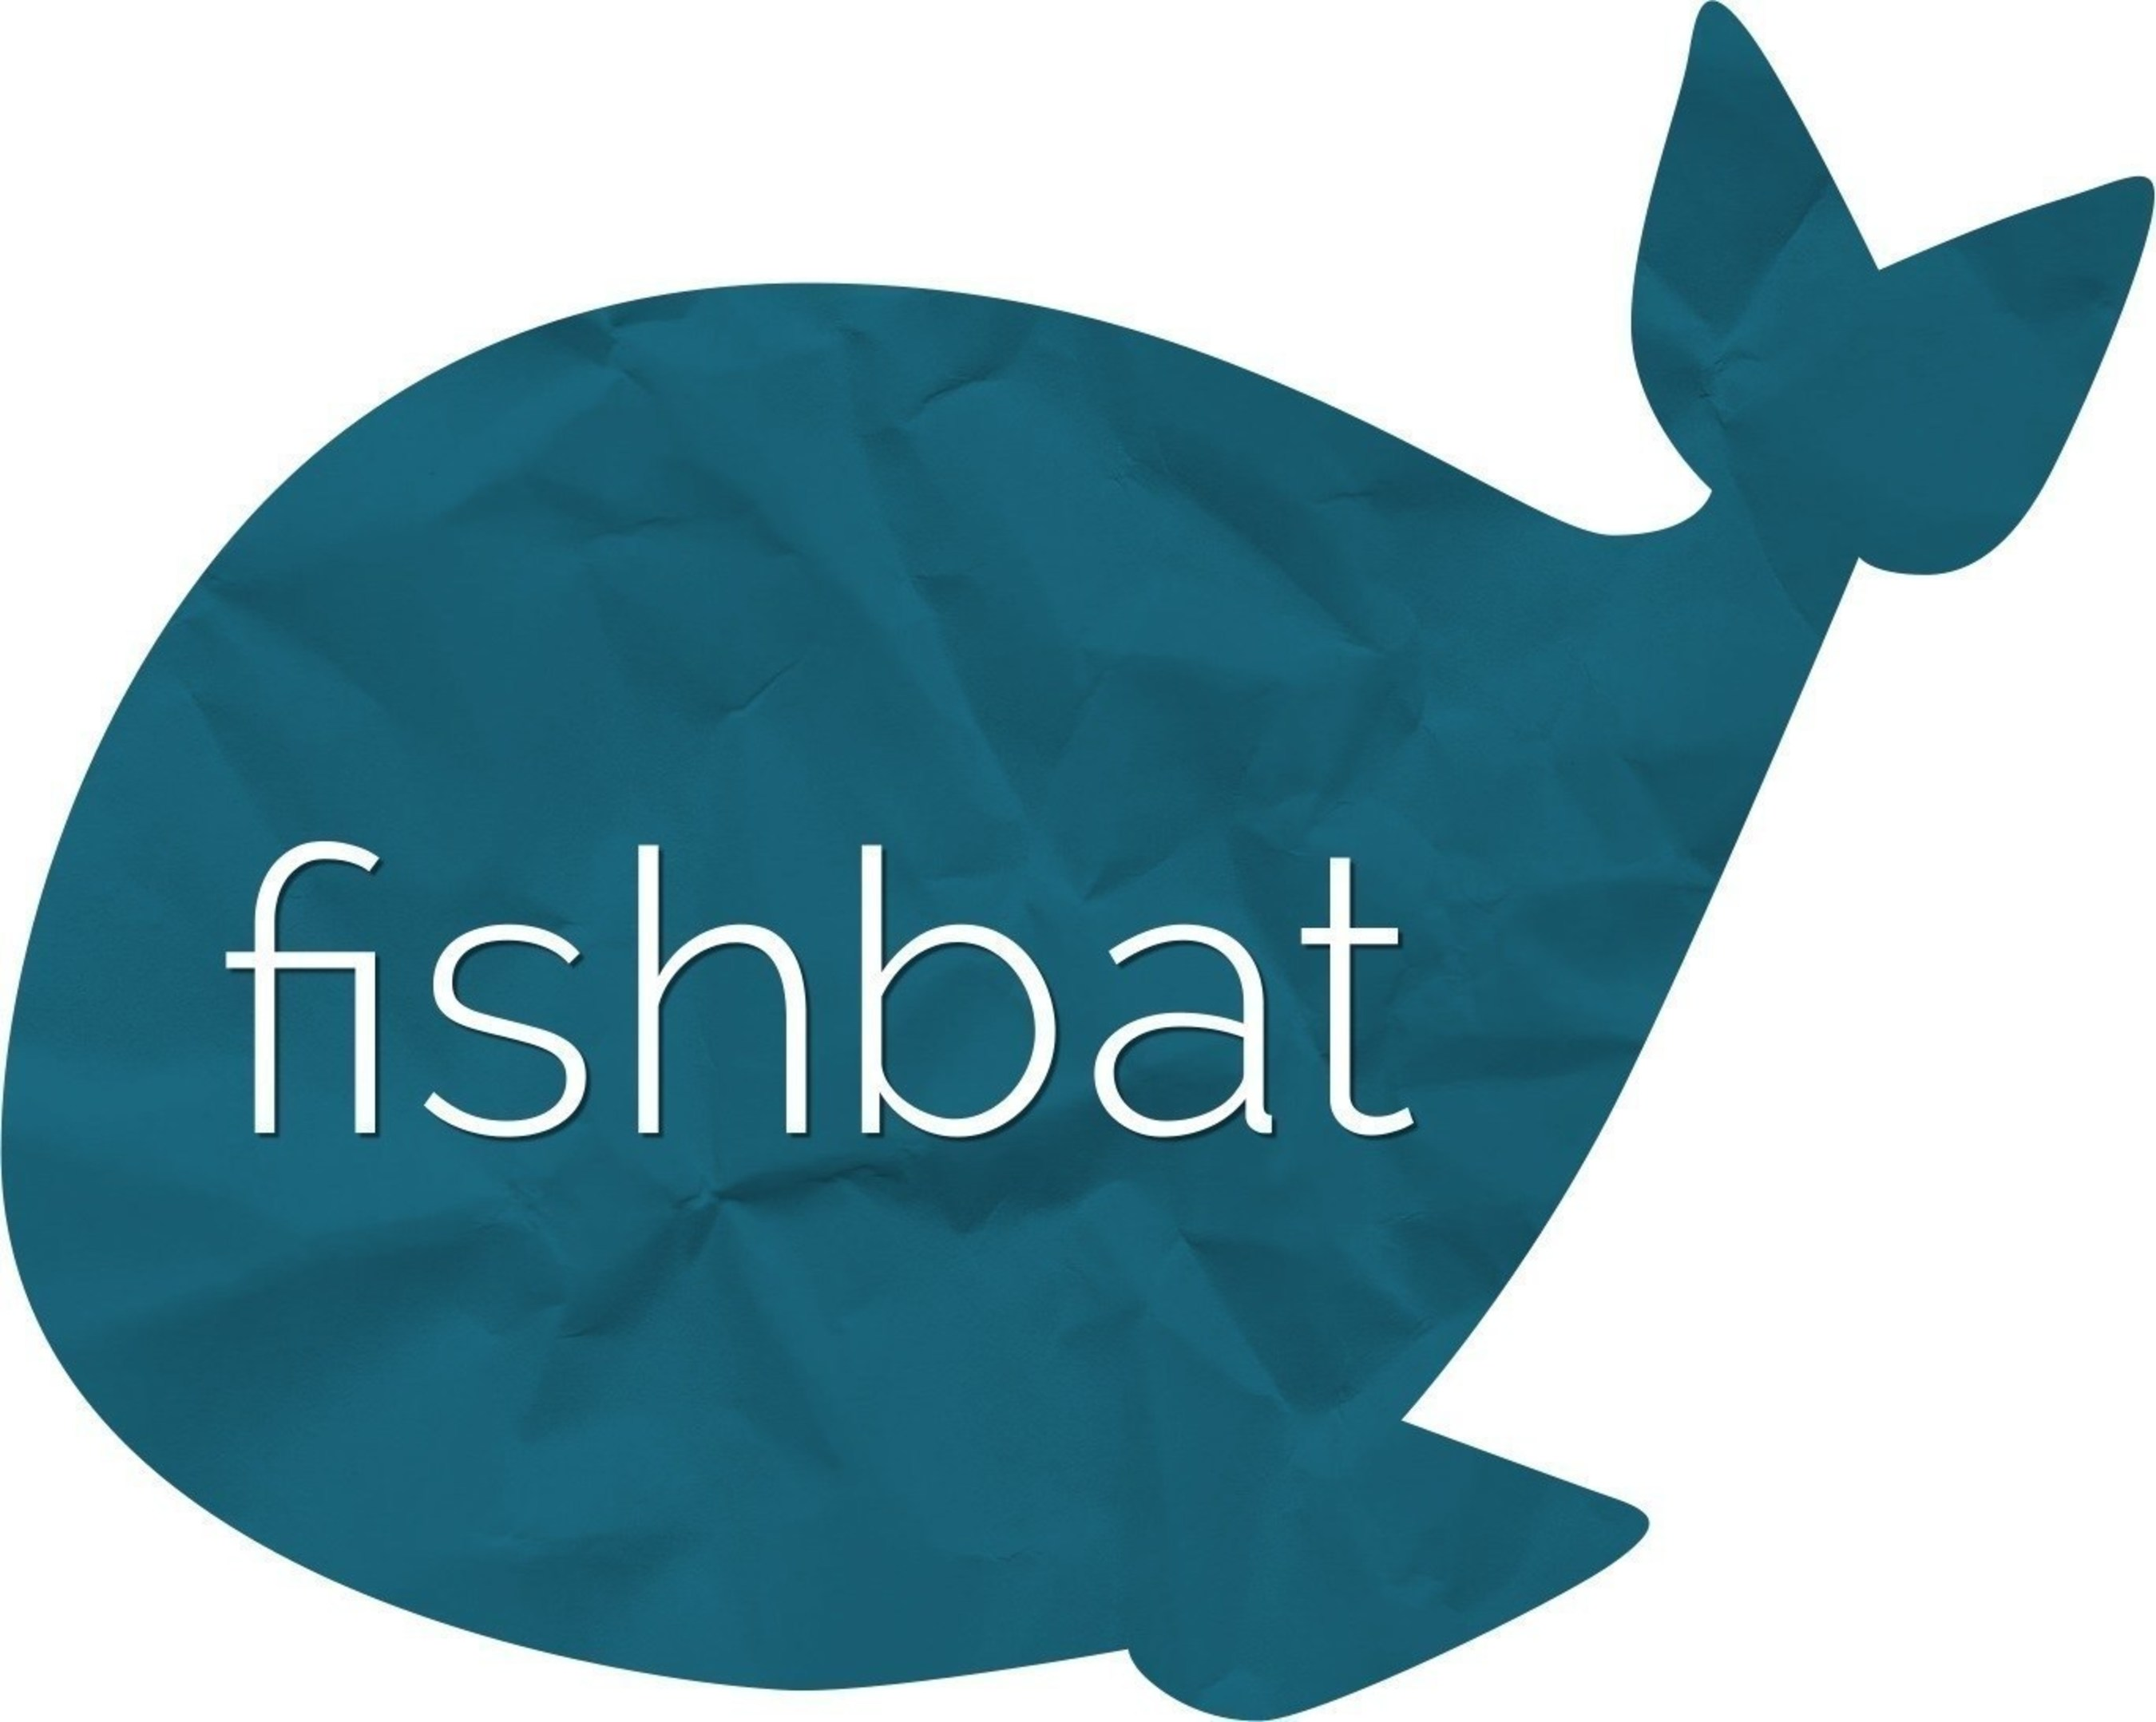 Fishbat Highlights the Top 3 Social Media Trends Businesses Should Be Aware of Right Now